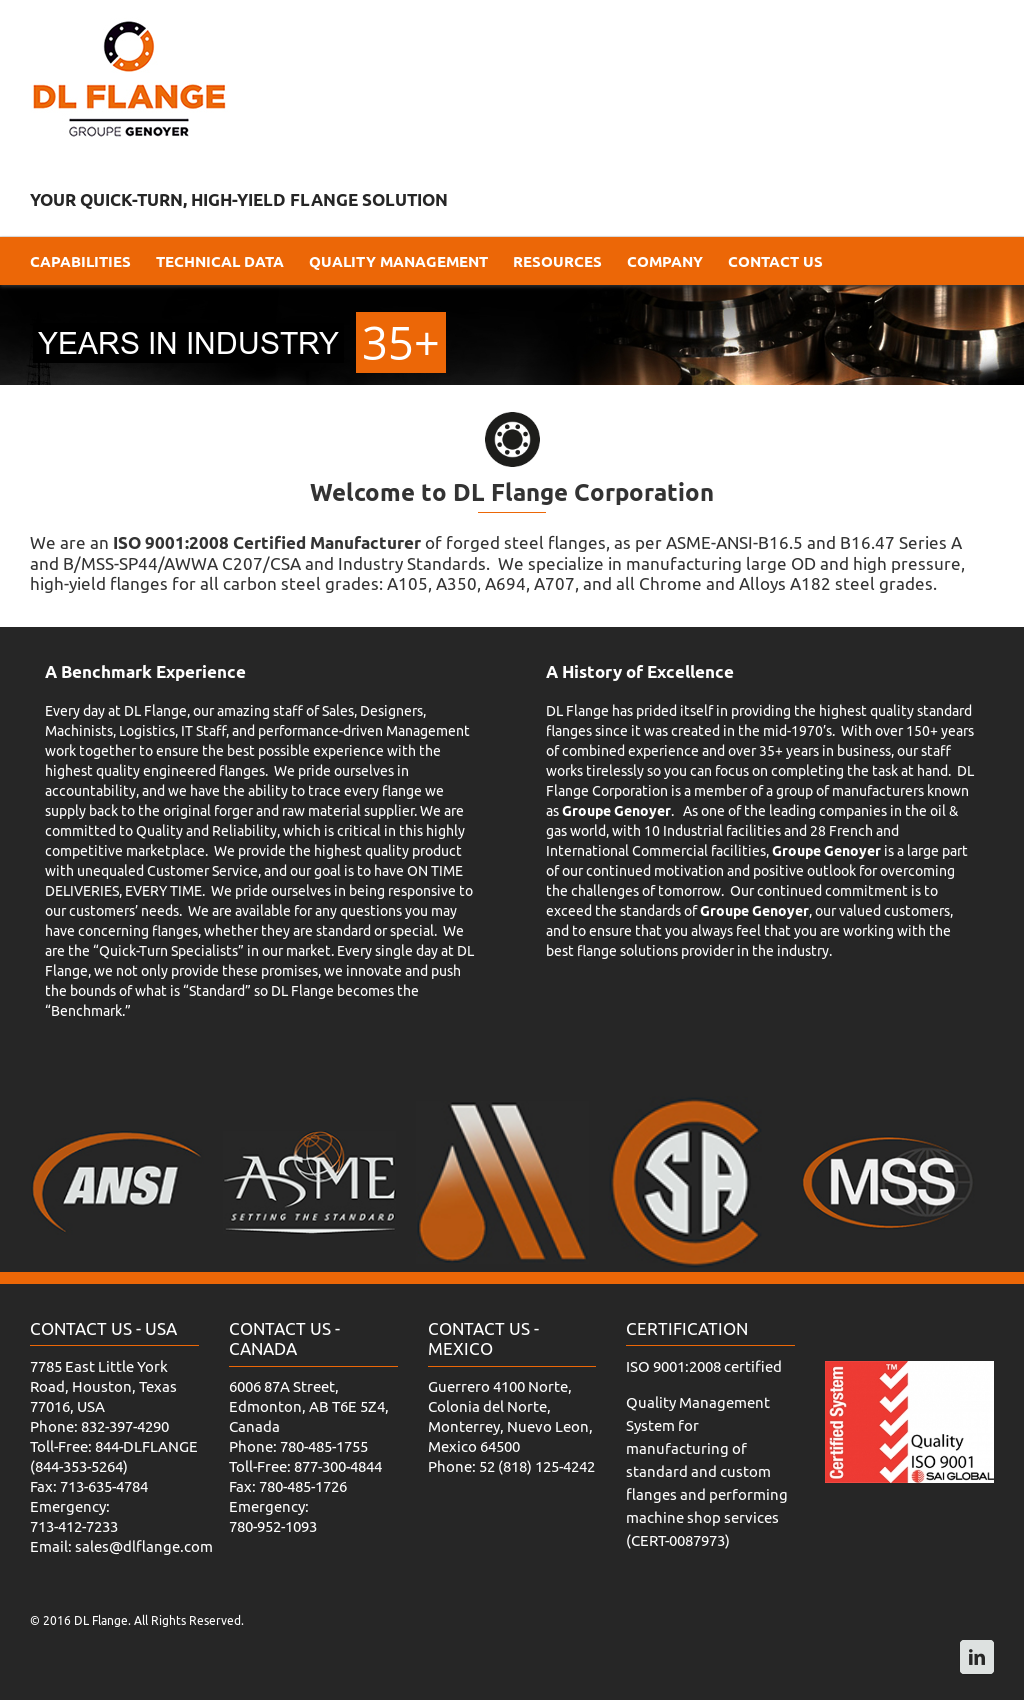 DL Flange Competitors, Revenue and Employees - Owler Company Profile